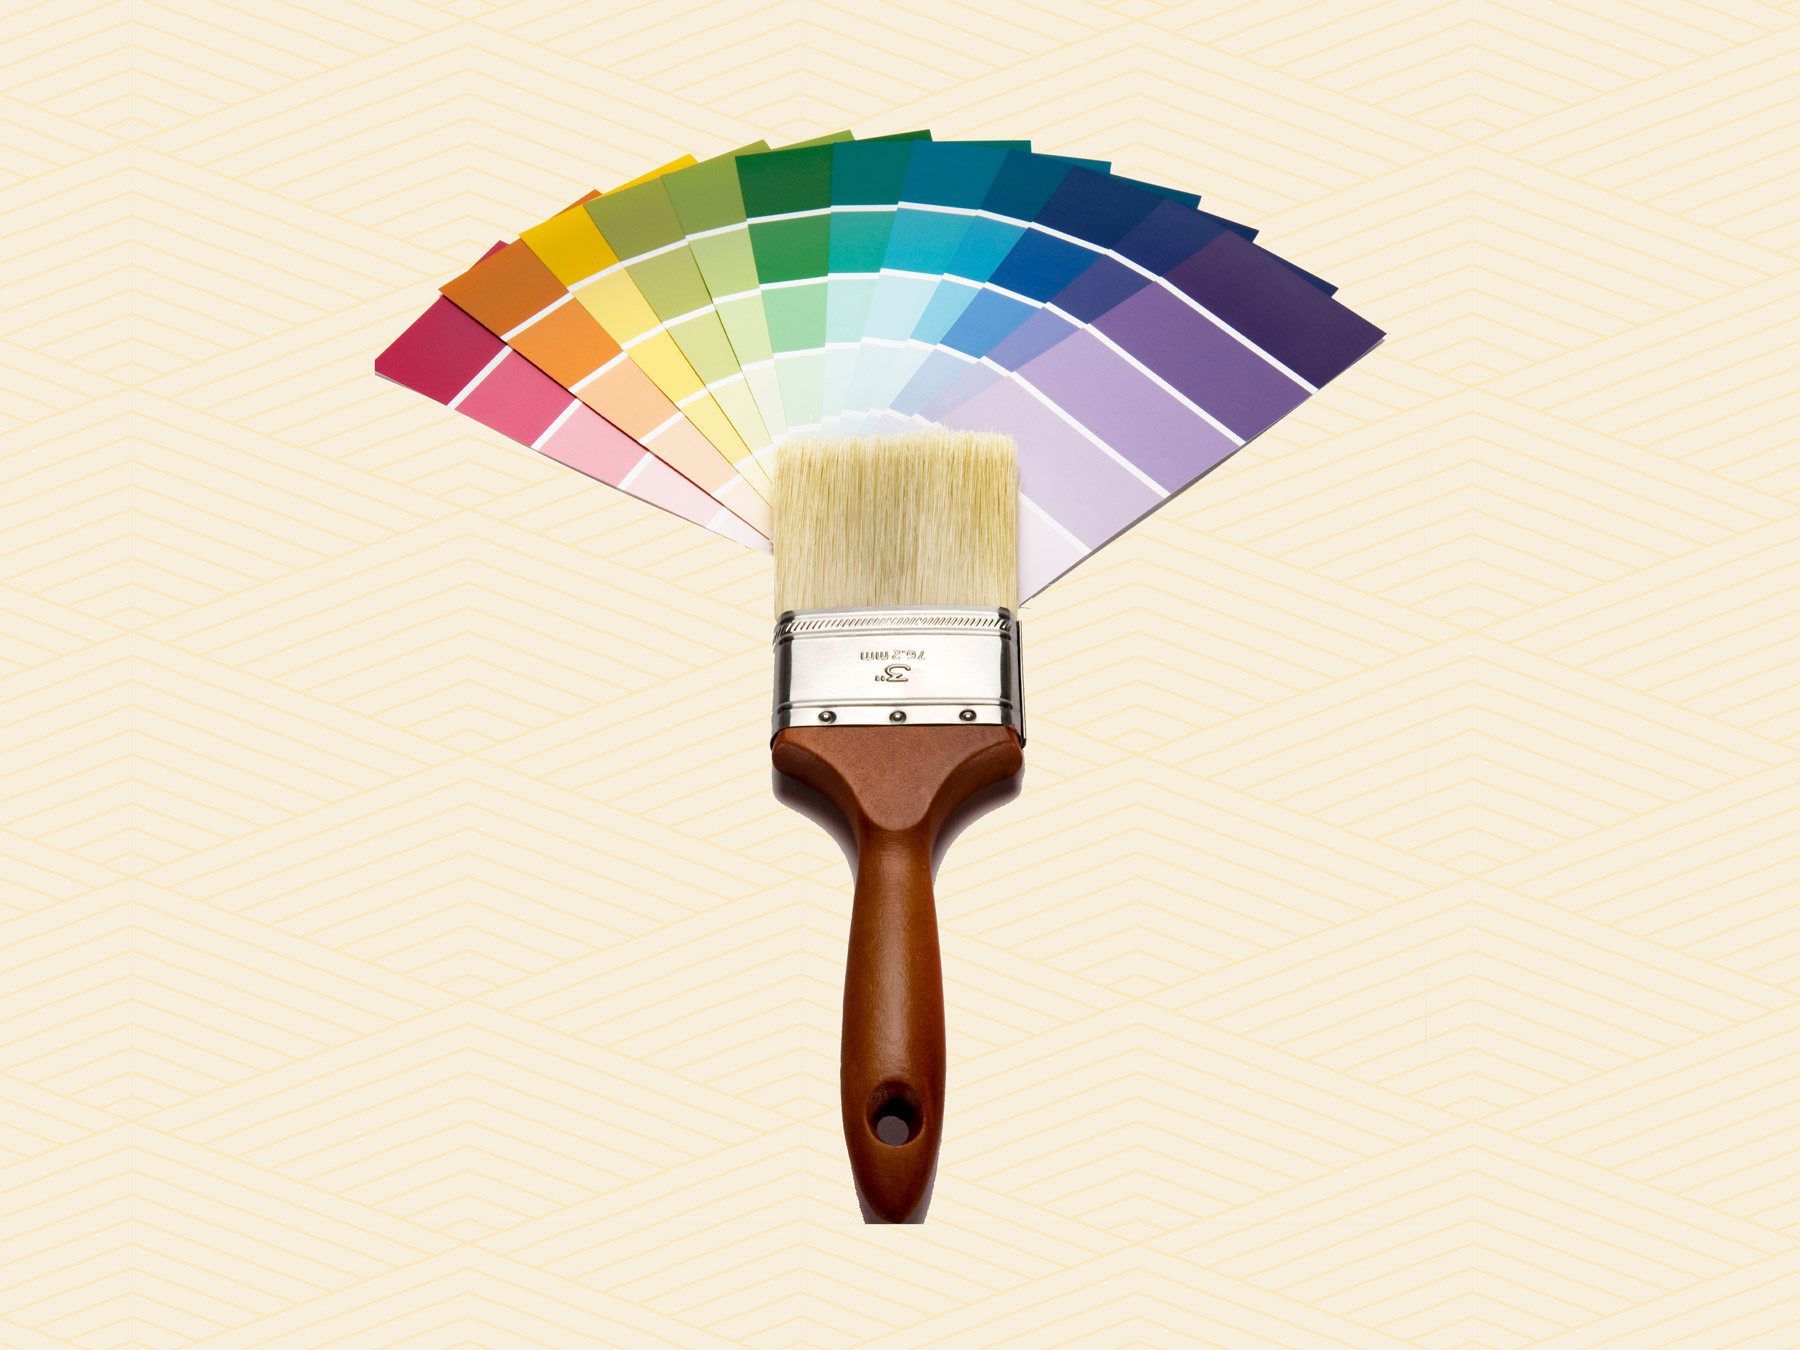 Stressful paint colors - stressful and calming colors, according to color psychology